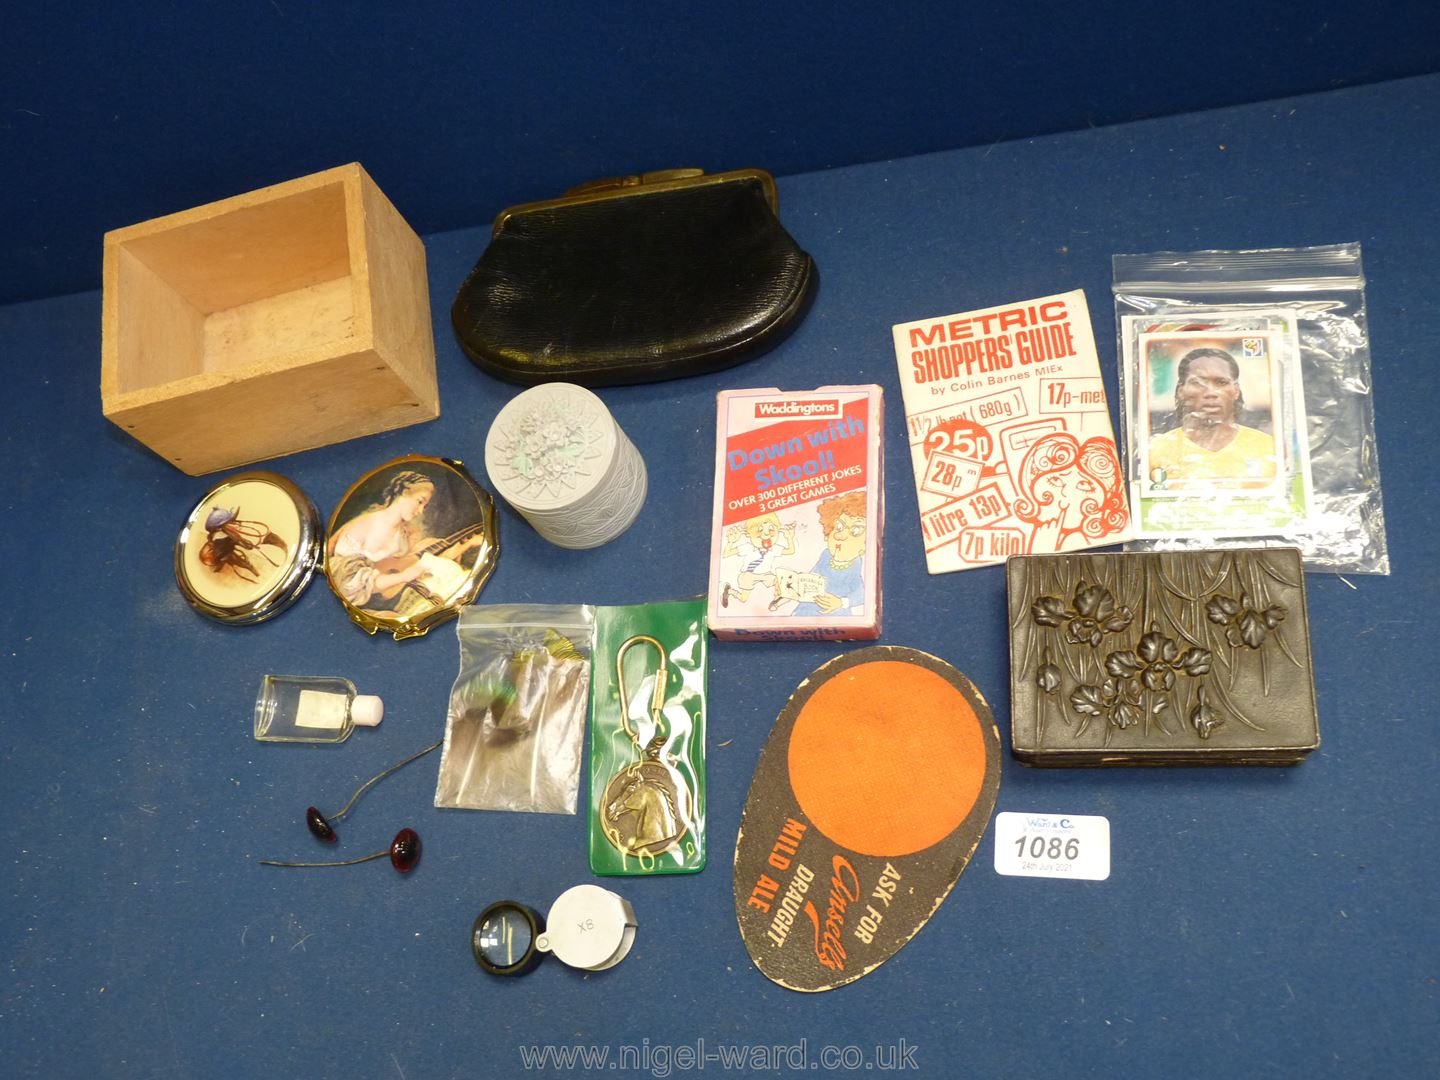 A quantity of miscellanea including compacts, vintage Teddy bear eyes, oriental box etc.